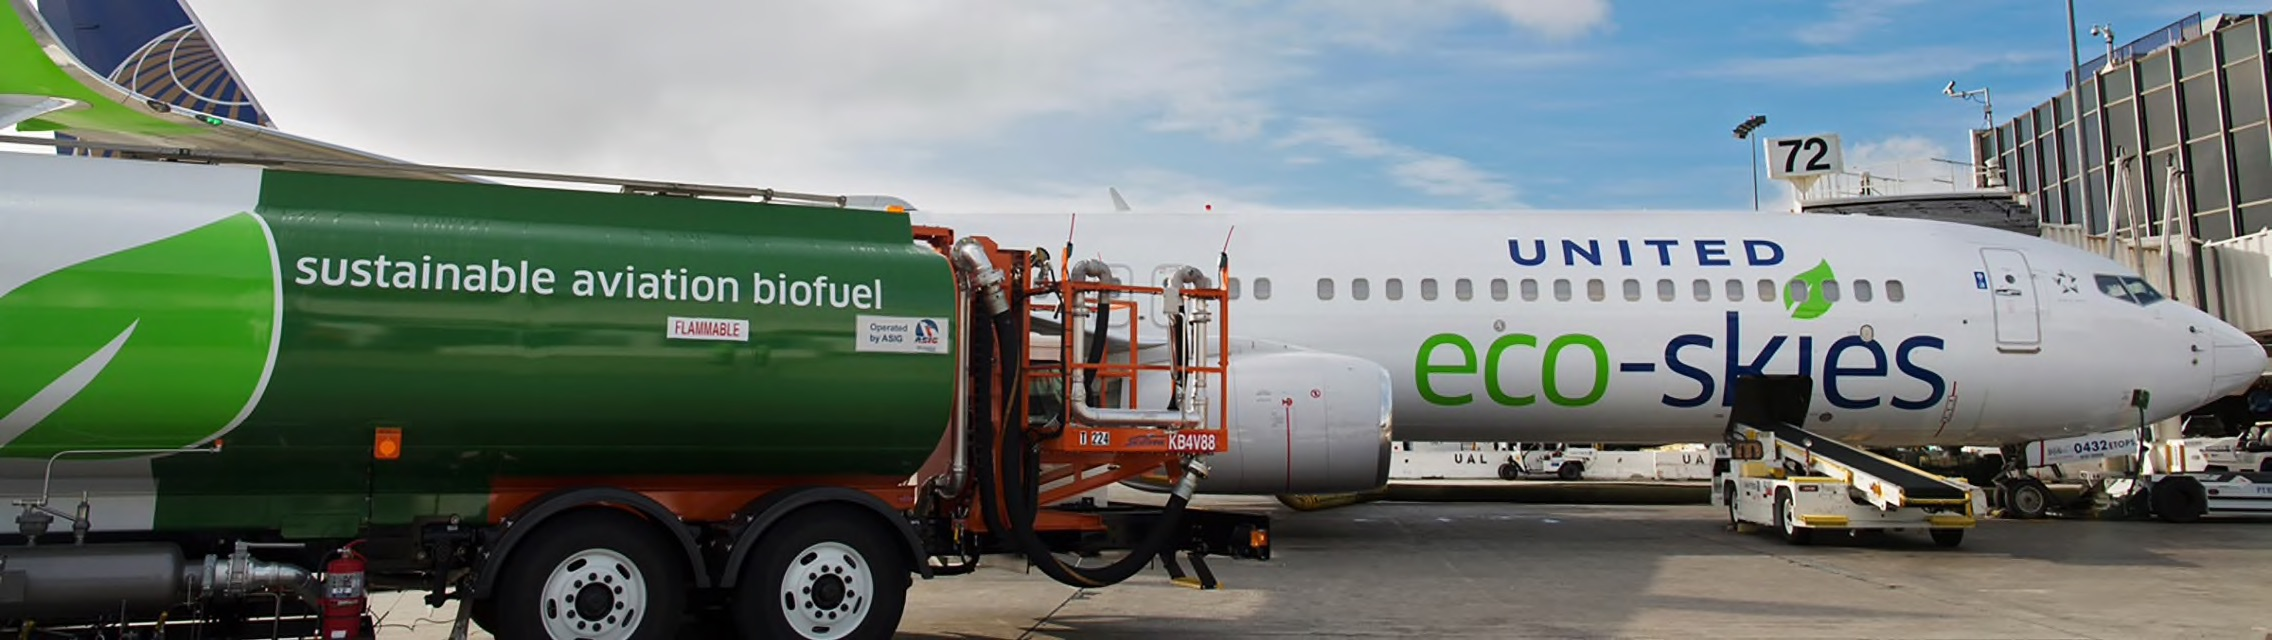 Kết quả hình ảnh cho United Airlines Expands Commitment to Biofuel, Powering More Flights With More Biofuel Than Any Other U.S. Carrier images